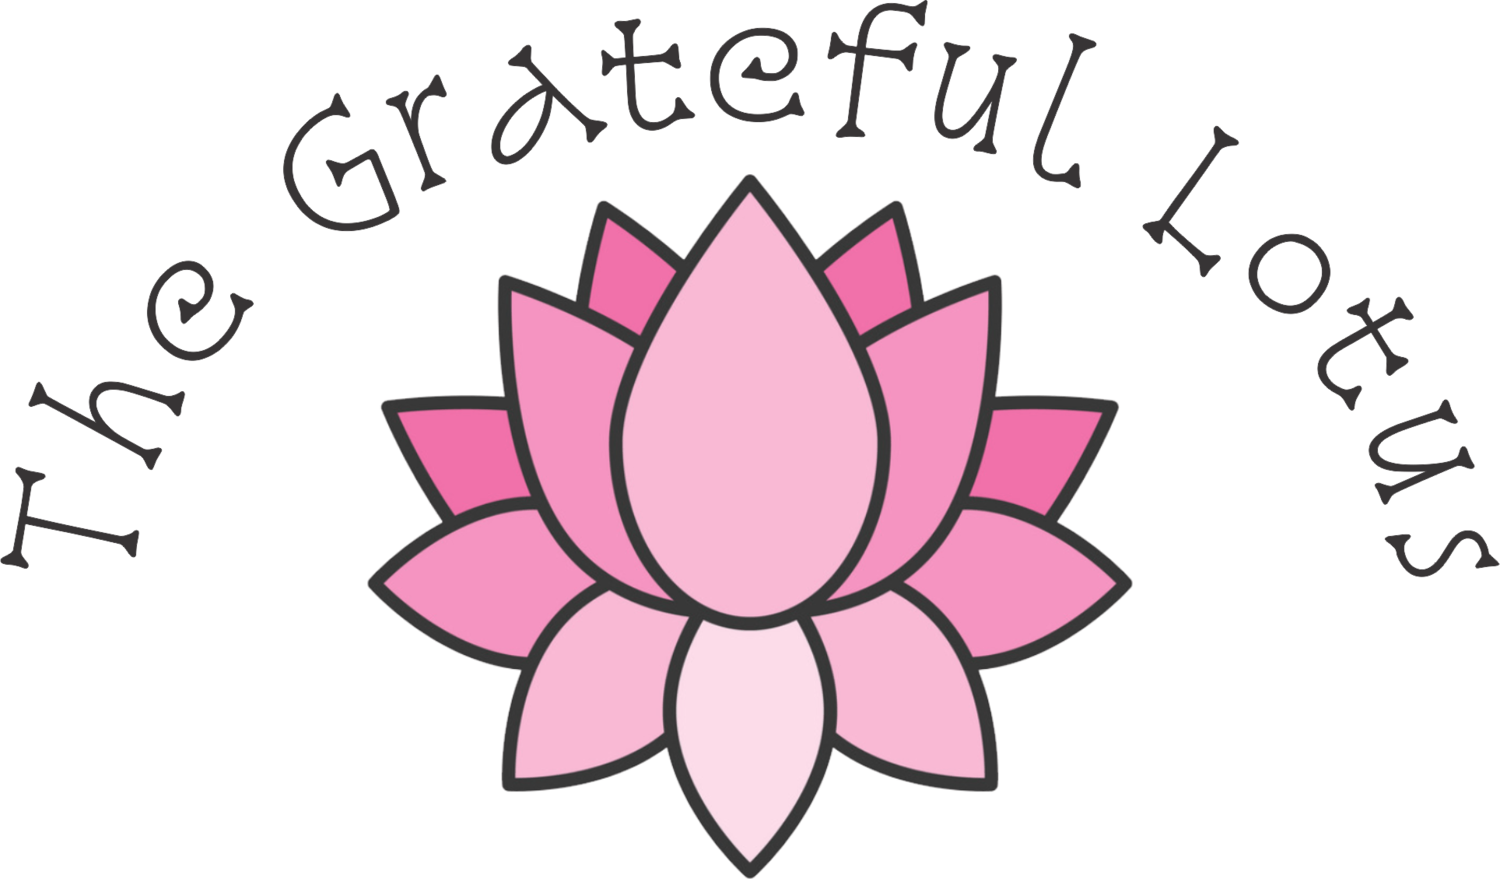 The Grateful Lotus